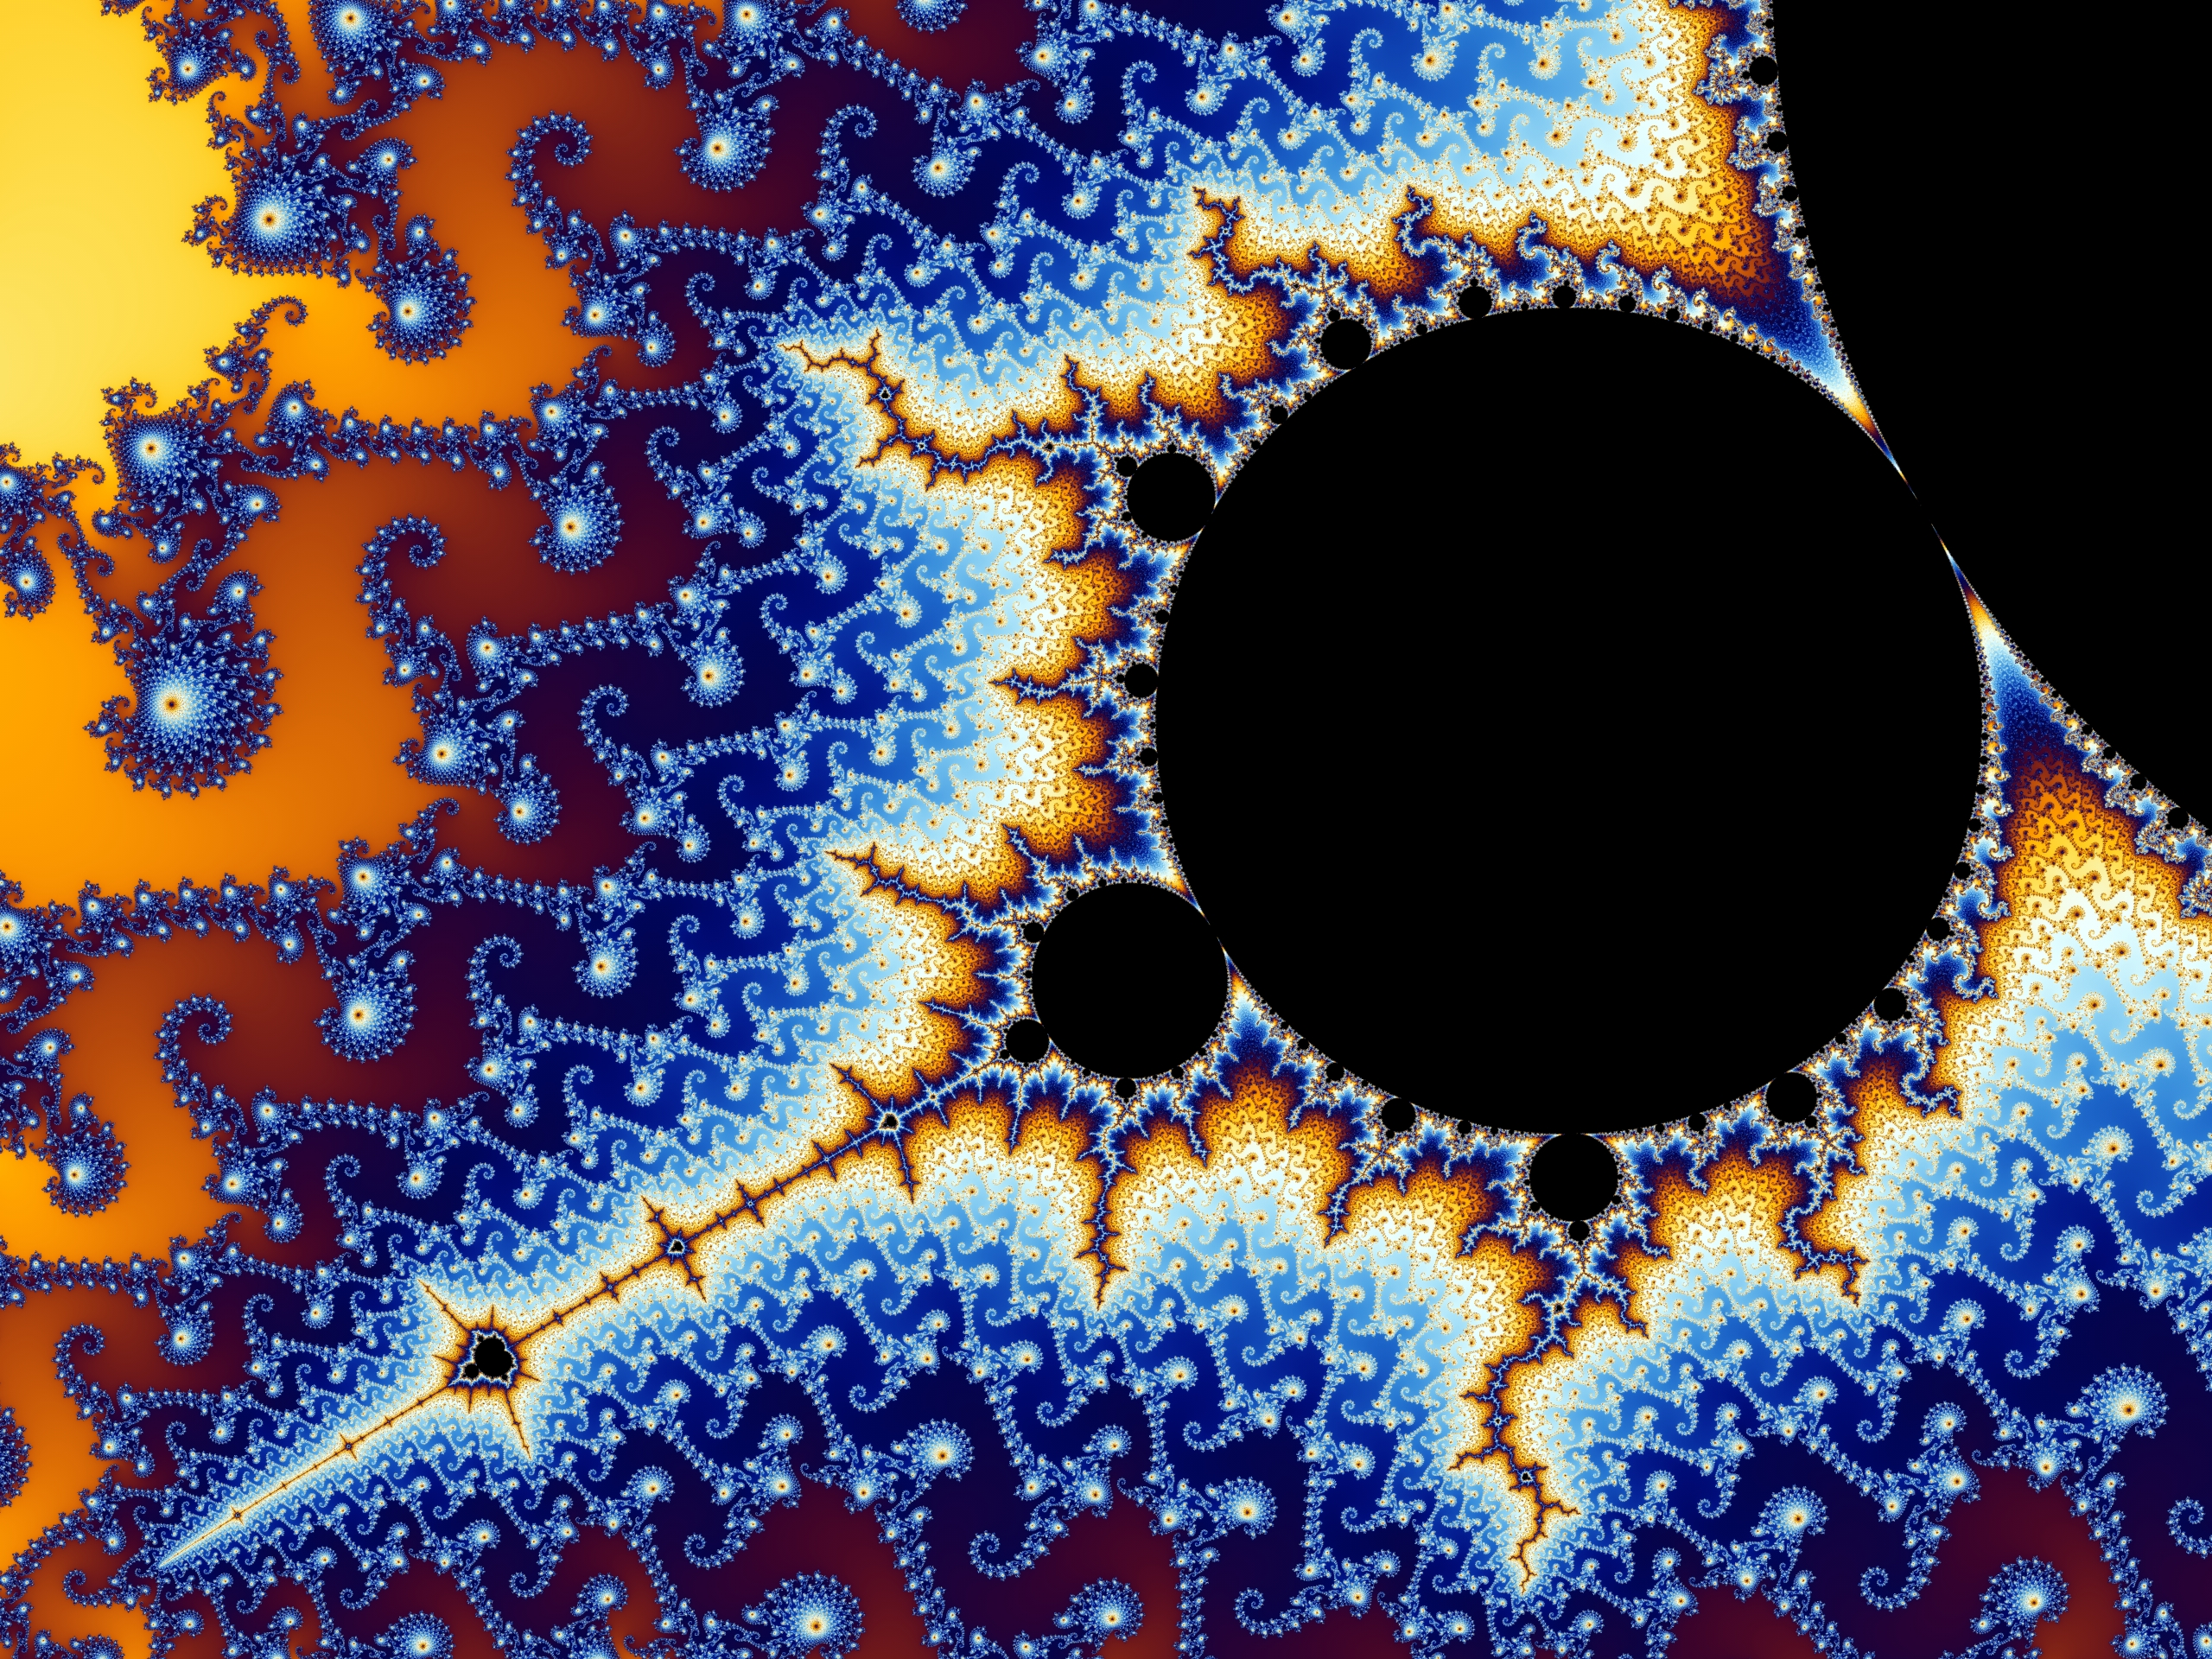 Mandelbrot Set Antenna Image from Wikipedia